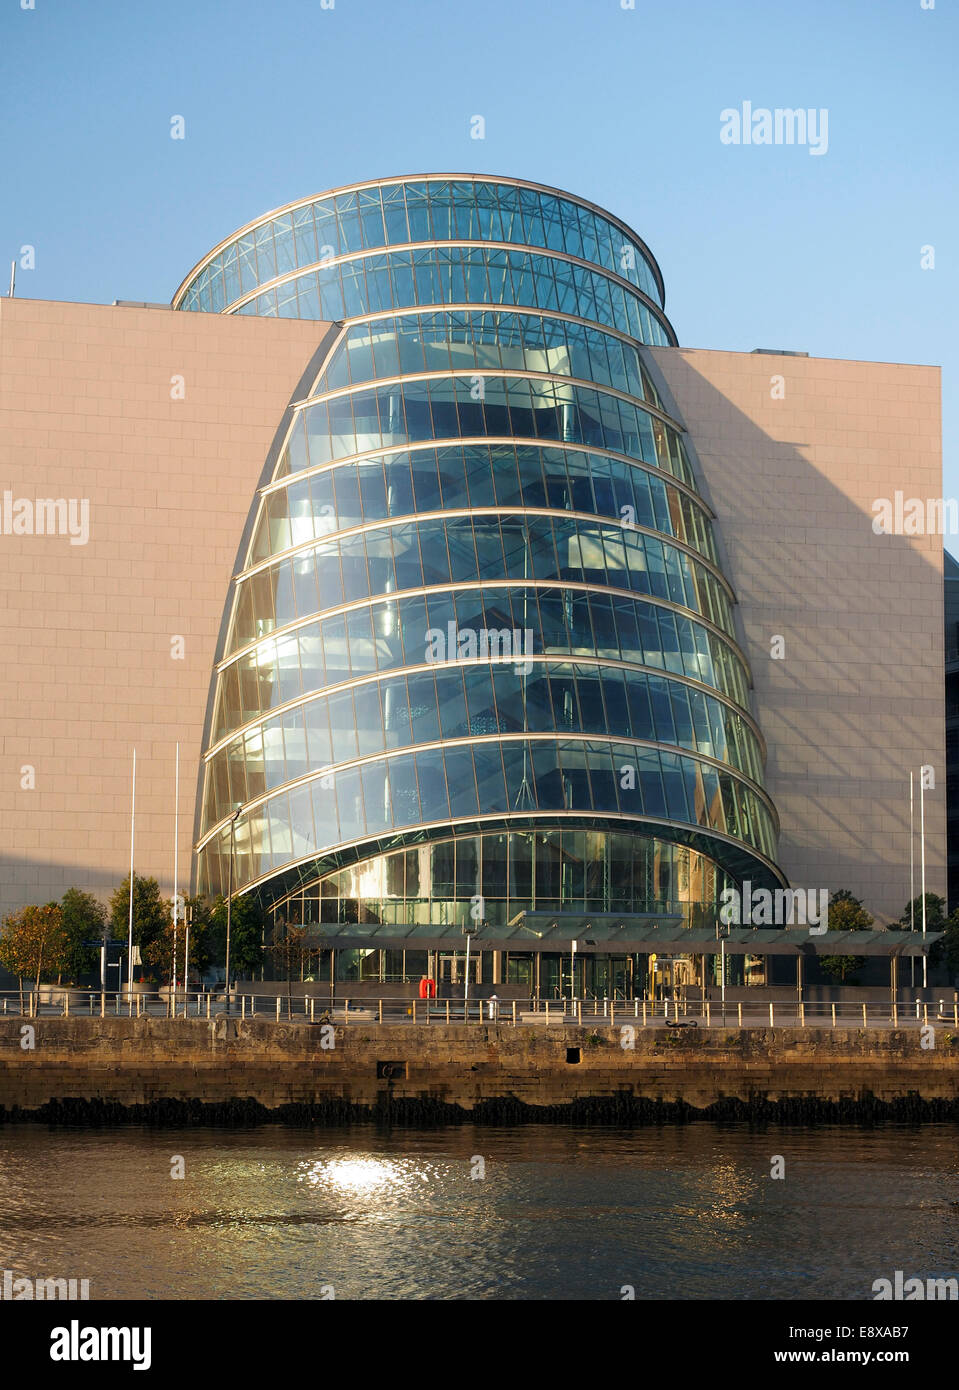 Convention Centre Center in  Docklands Dublin Ireland on River Liffey - Stock Image